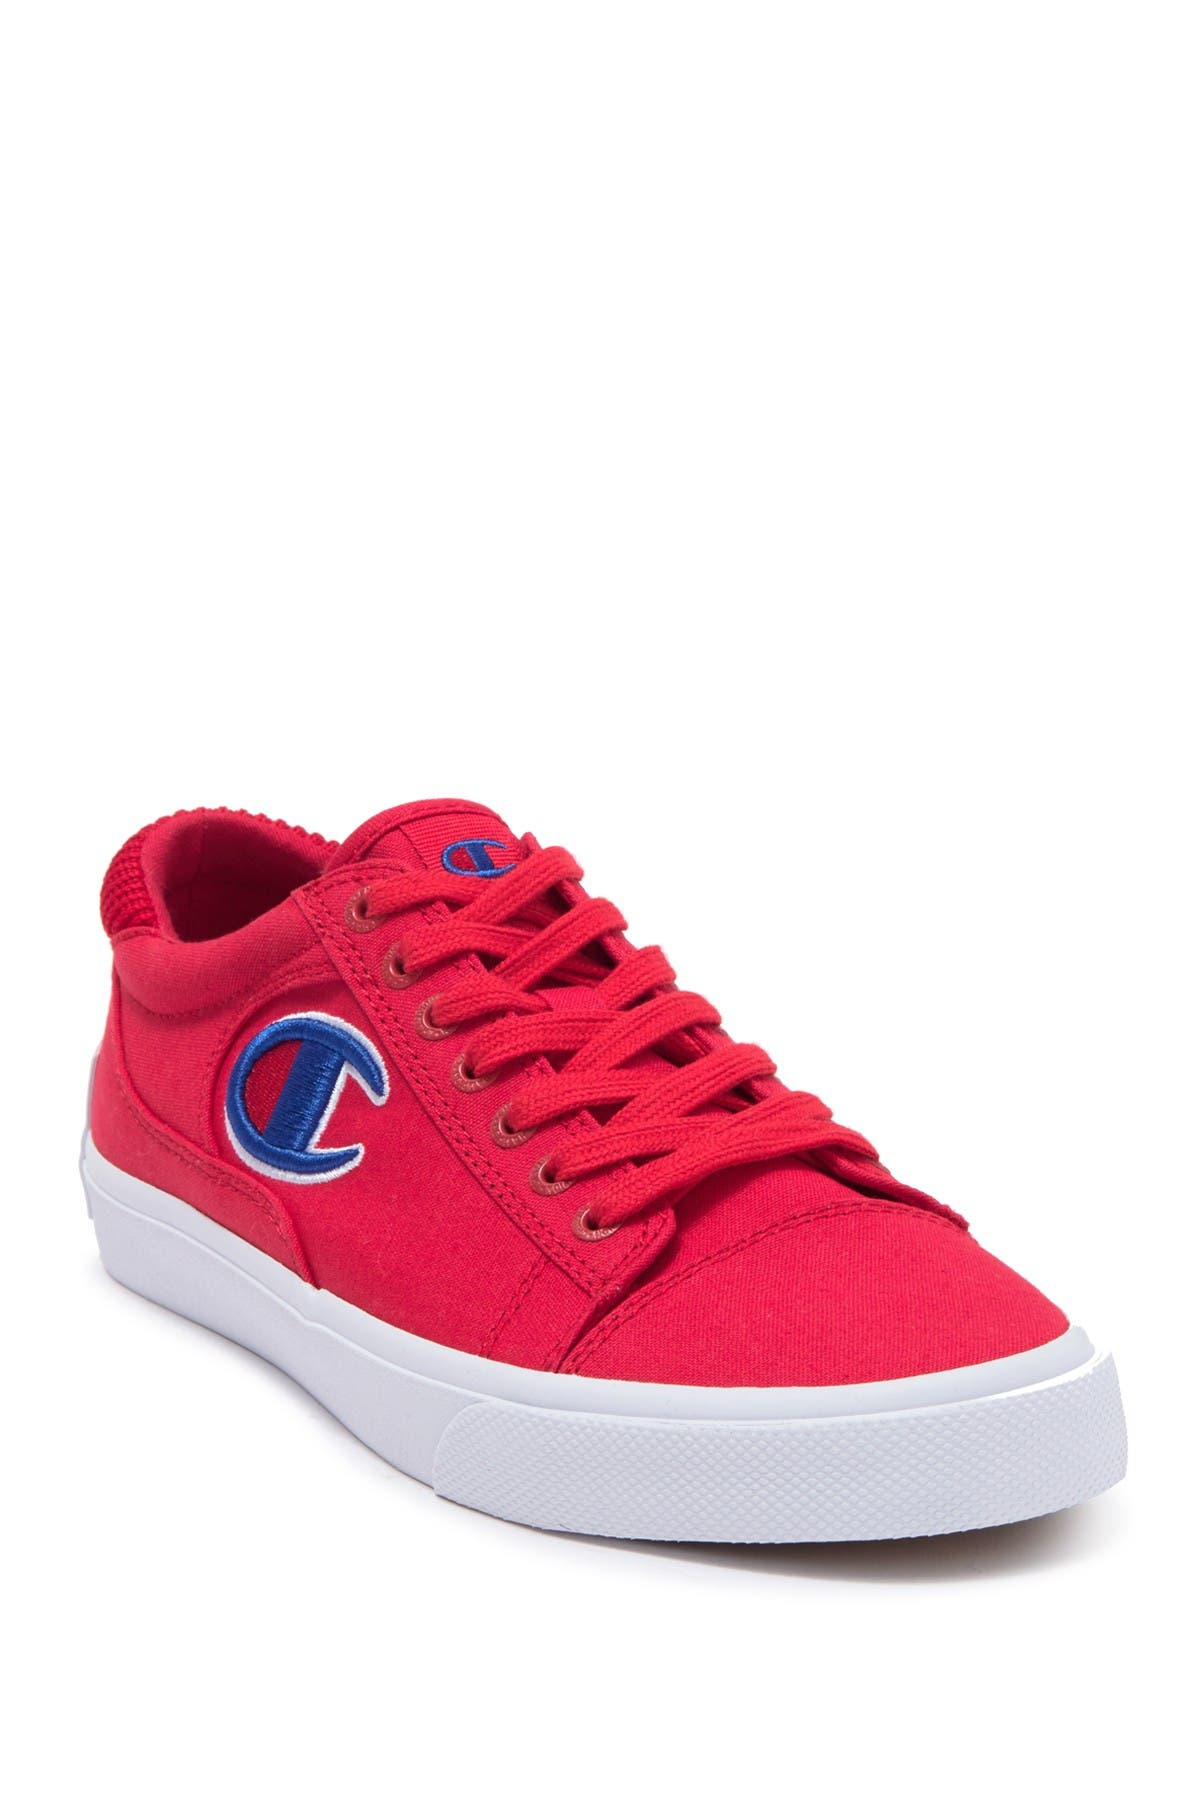 Image of Champion Fringe Low Top Sneaker